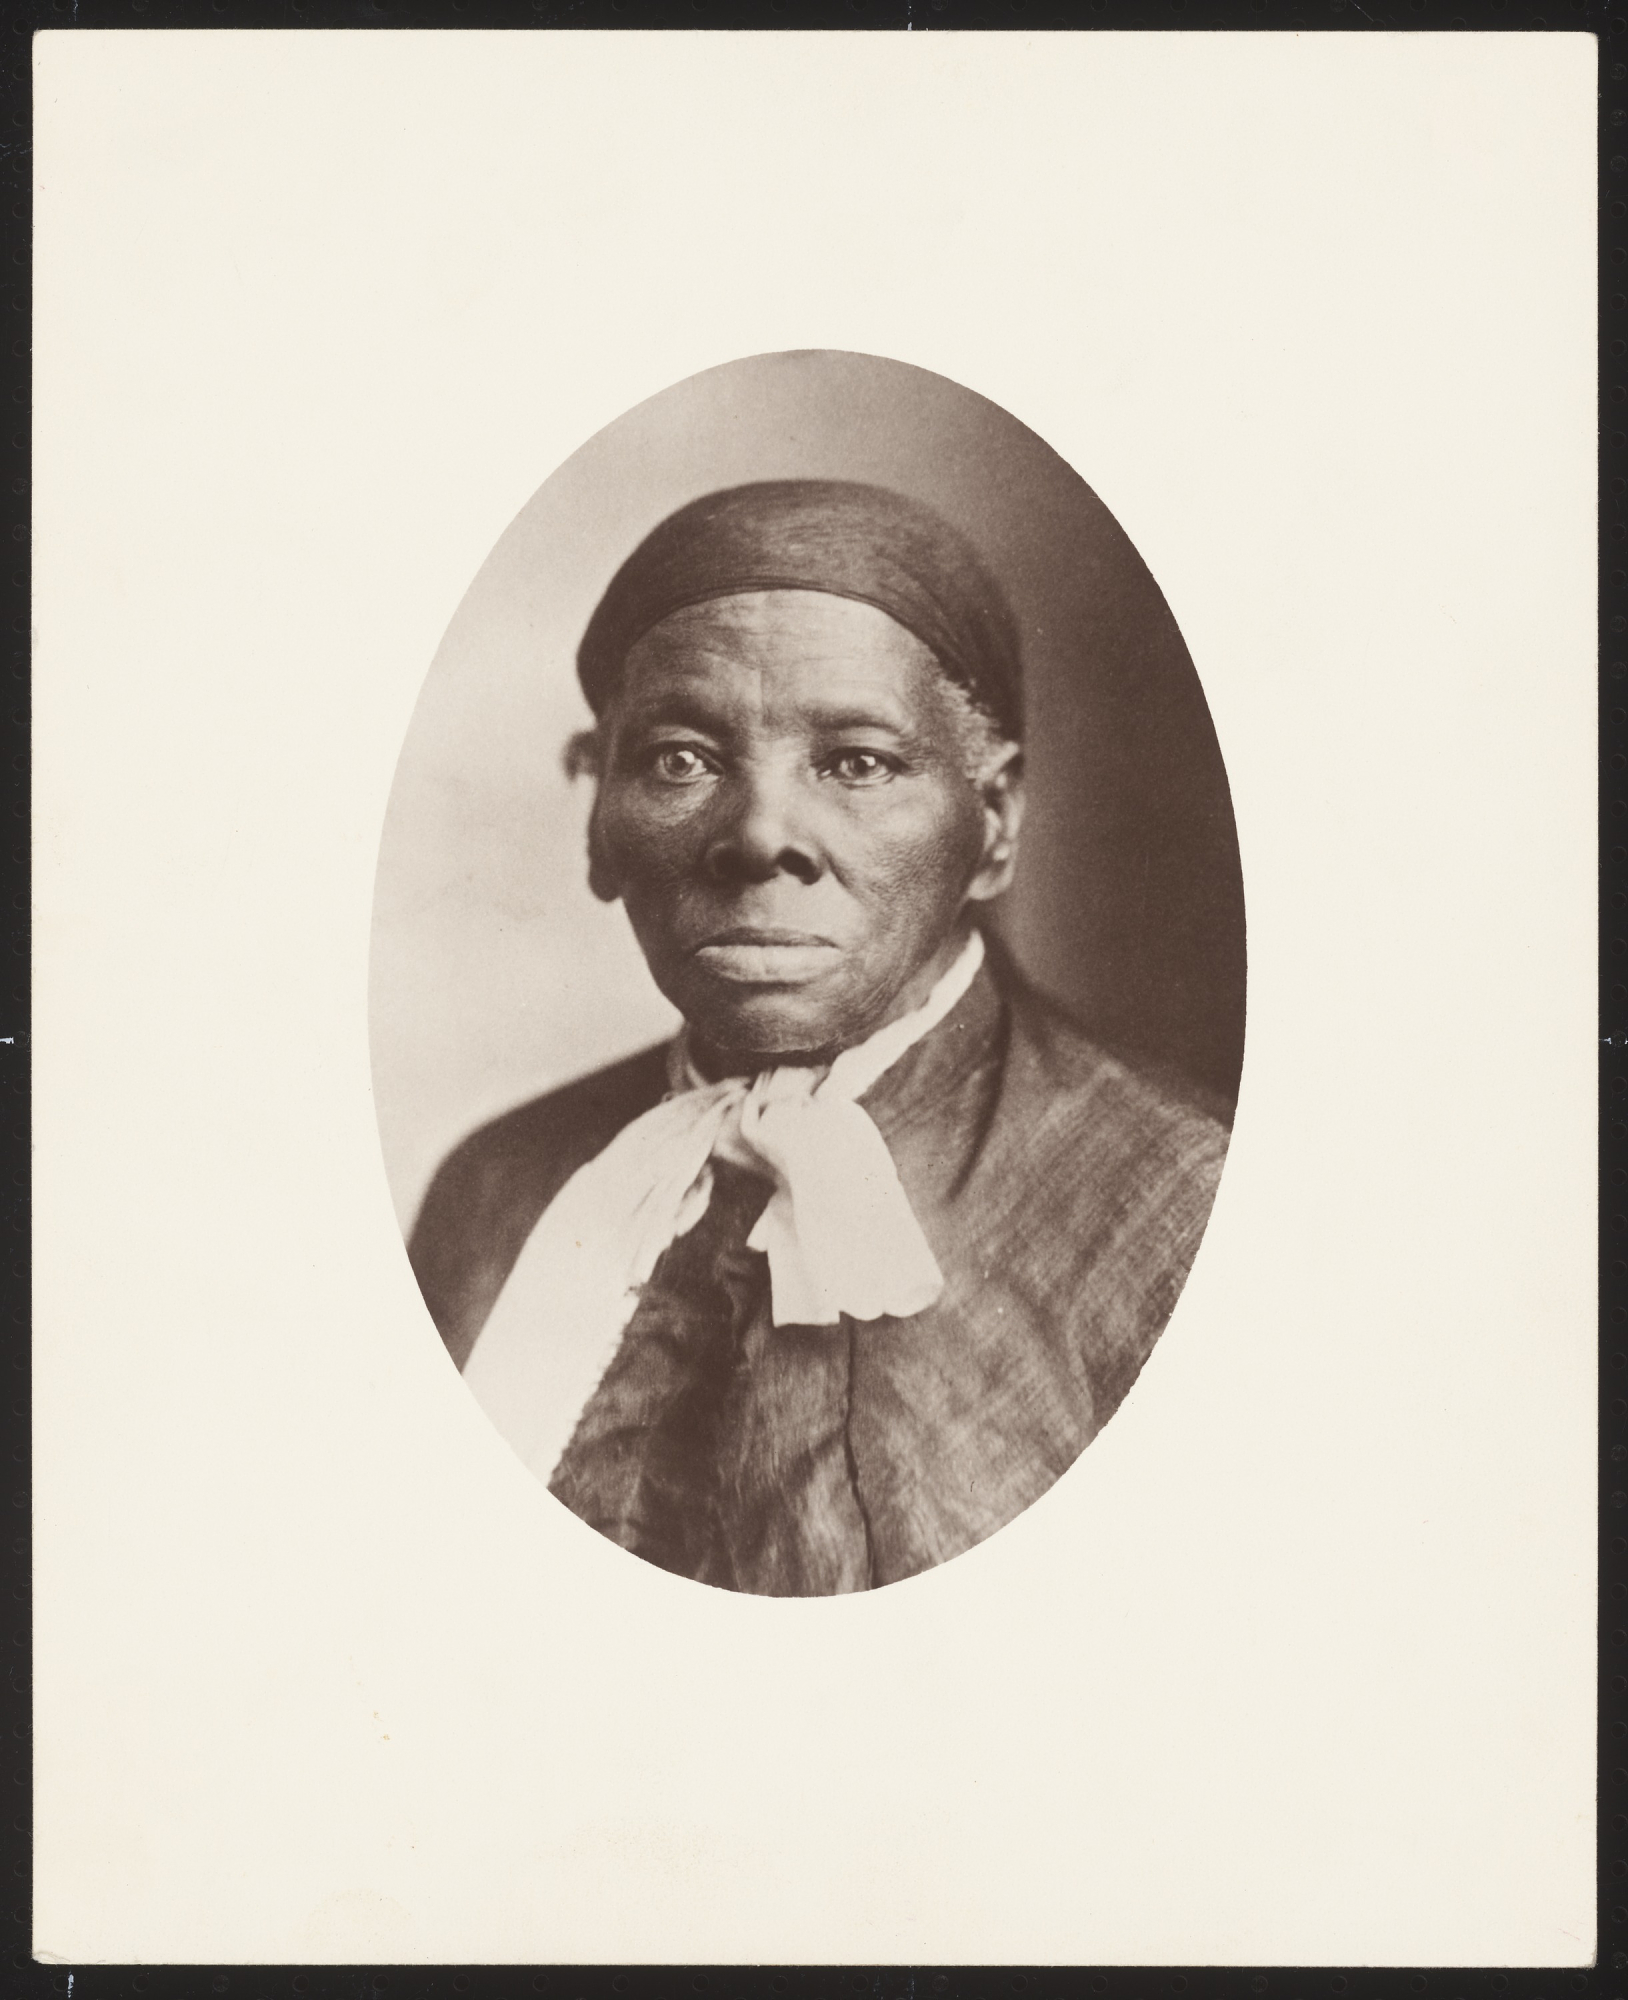 the contributions of harriet tubman dred scott and frederick douglass in the quest of african americ Harriet tubman (born araminta ross c 1822 – march 10, 1913) was an african-american abolitionist, humanitarian, and, during the american civil war, a union spyborn into slavery, tubman escaped and subsequently made some thirteen missions to rescue approximately seventy enslaved family and friends, using the network of antislavery activists and safe houses known as the underground railroad.